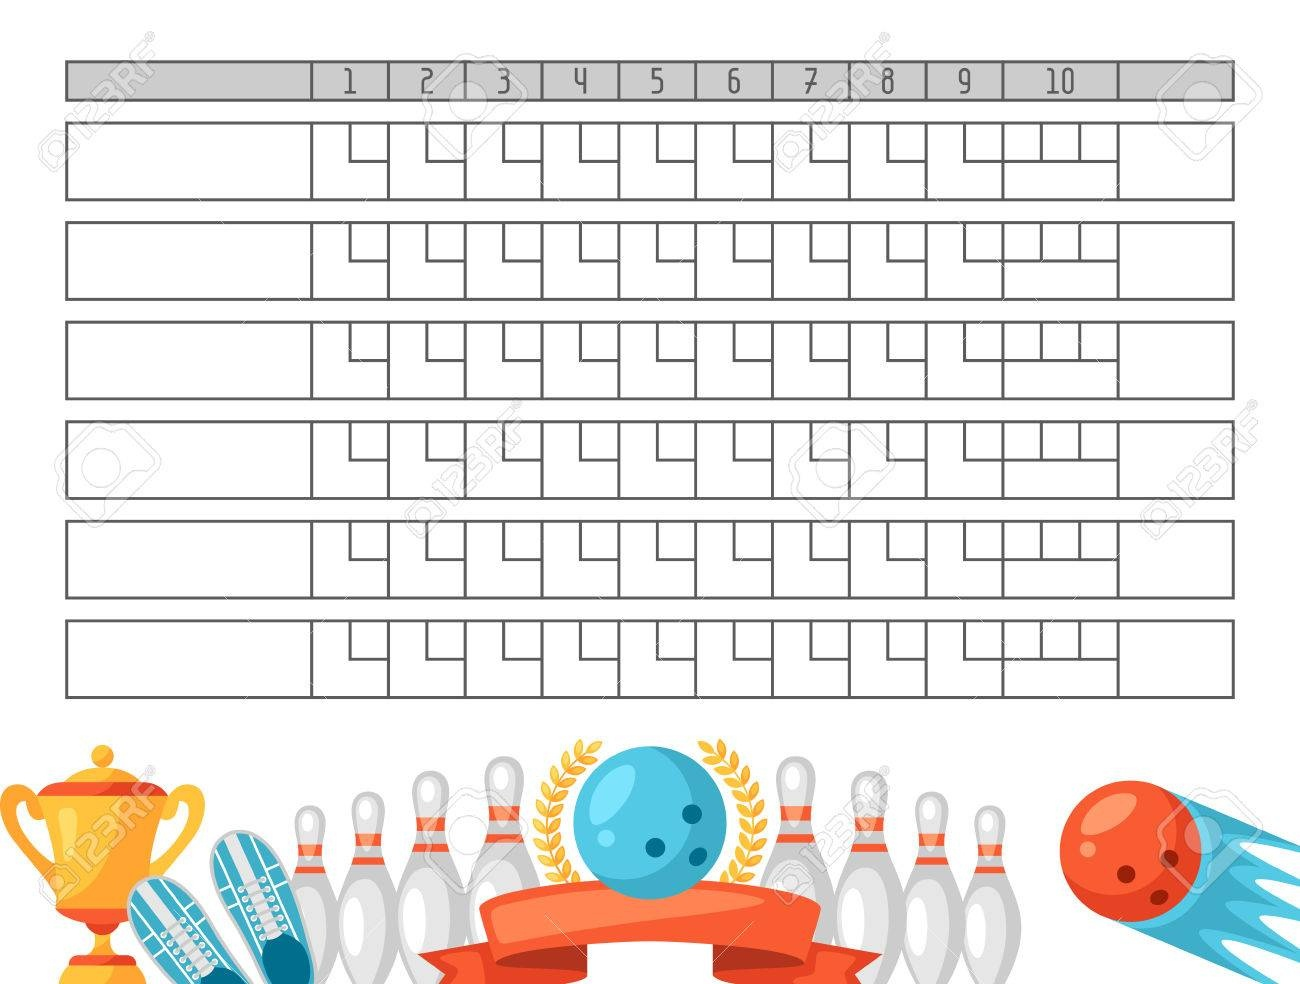 Bowling Score Sheet. Blank Template Scoreboard With Game Objects - Free Printable Bowling Score Sheets